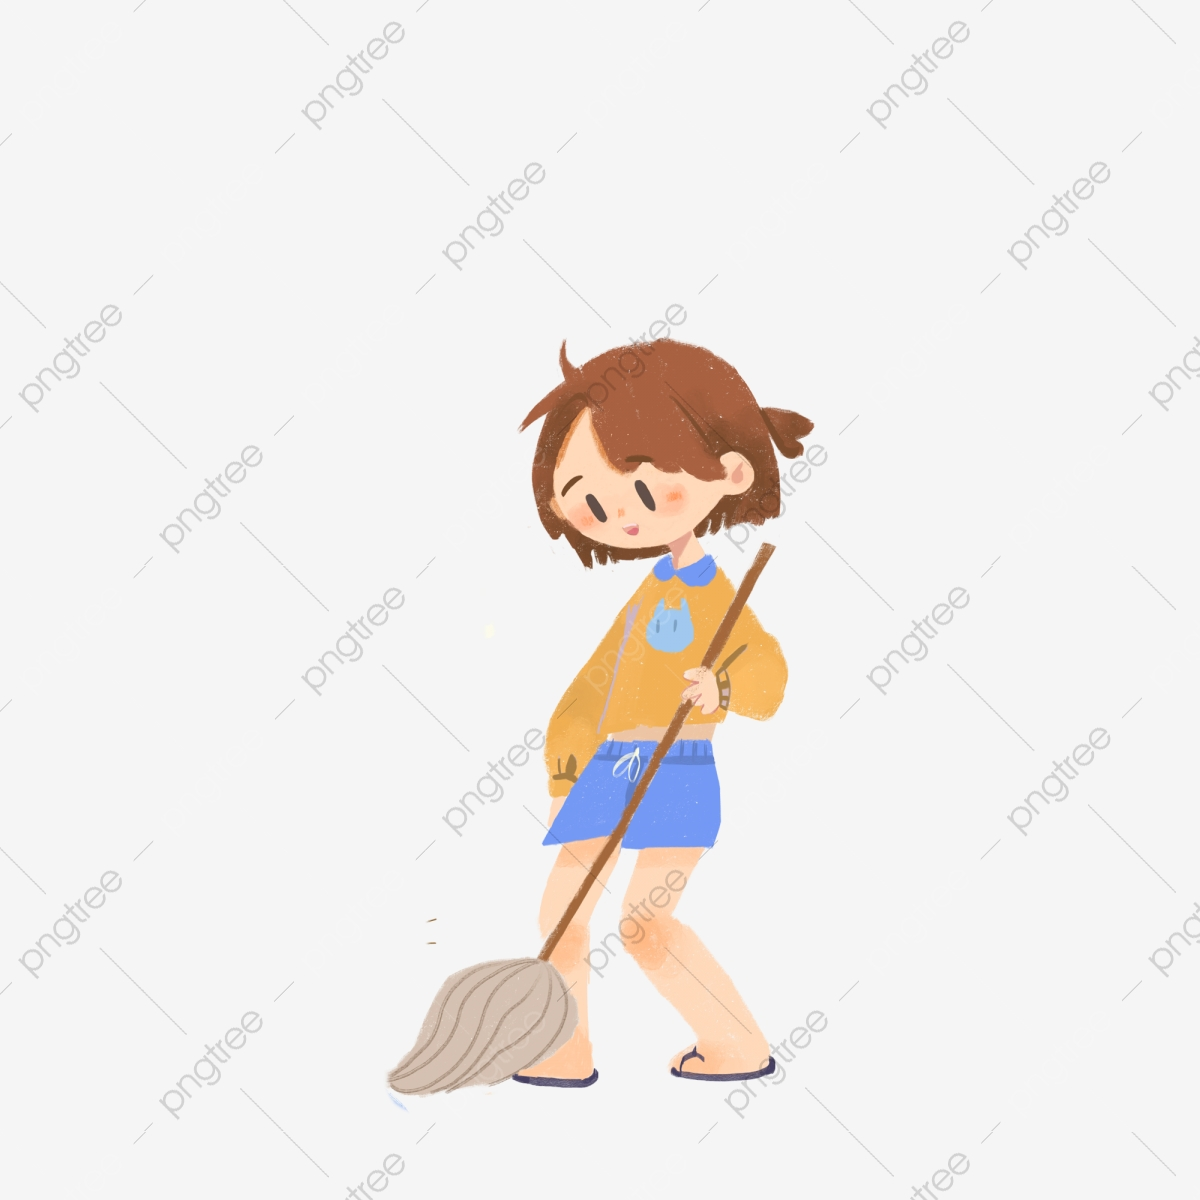 little girl sweeping the floor cleaning girl beautiful girl cartoon character png transparent clipart image and psd file for free download https pngtree com freepng little girl sweeping the floor 4683670 html